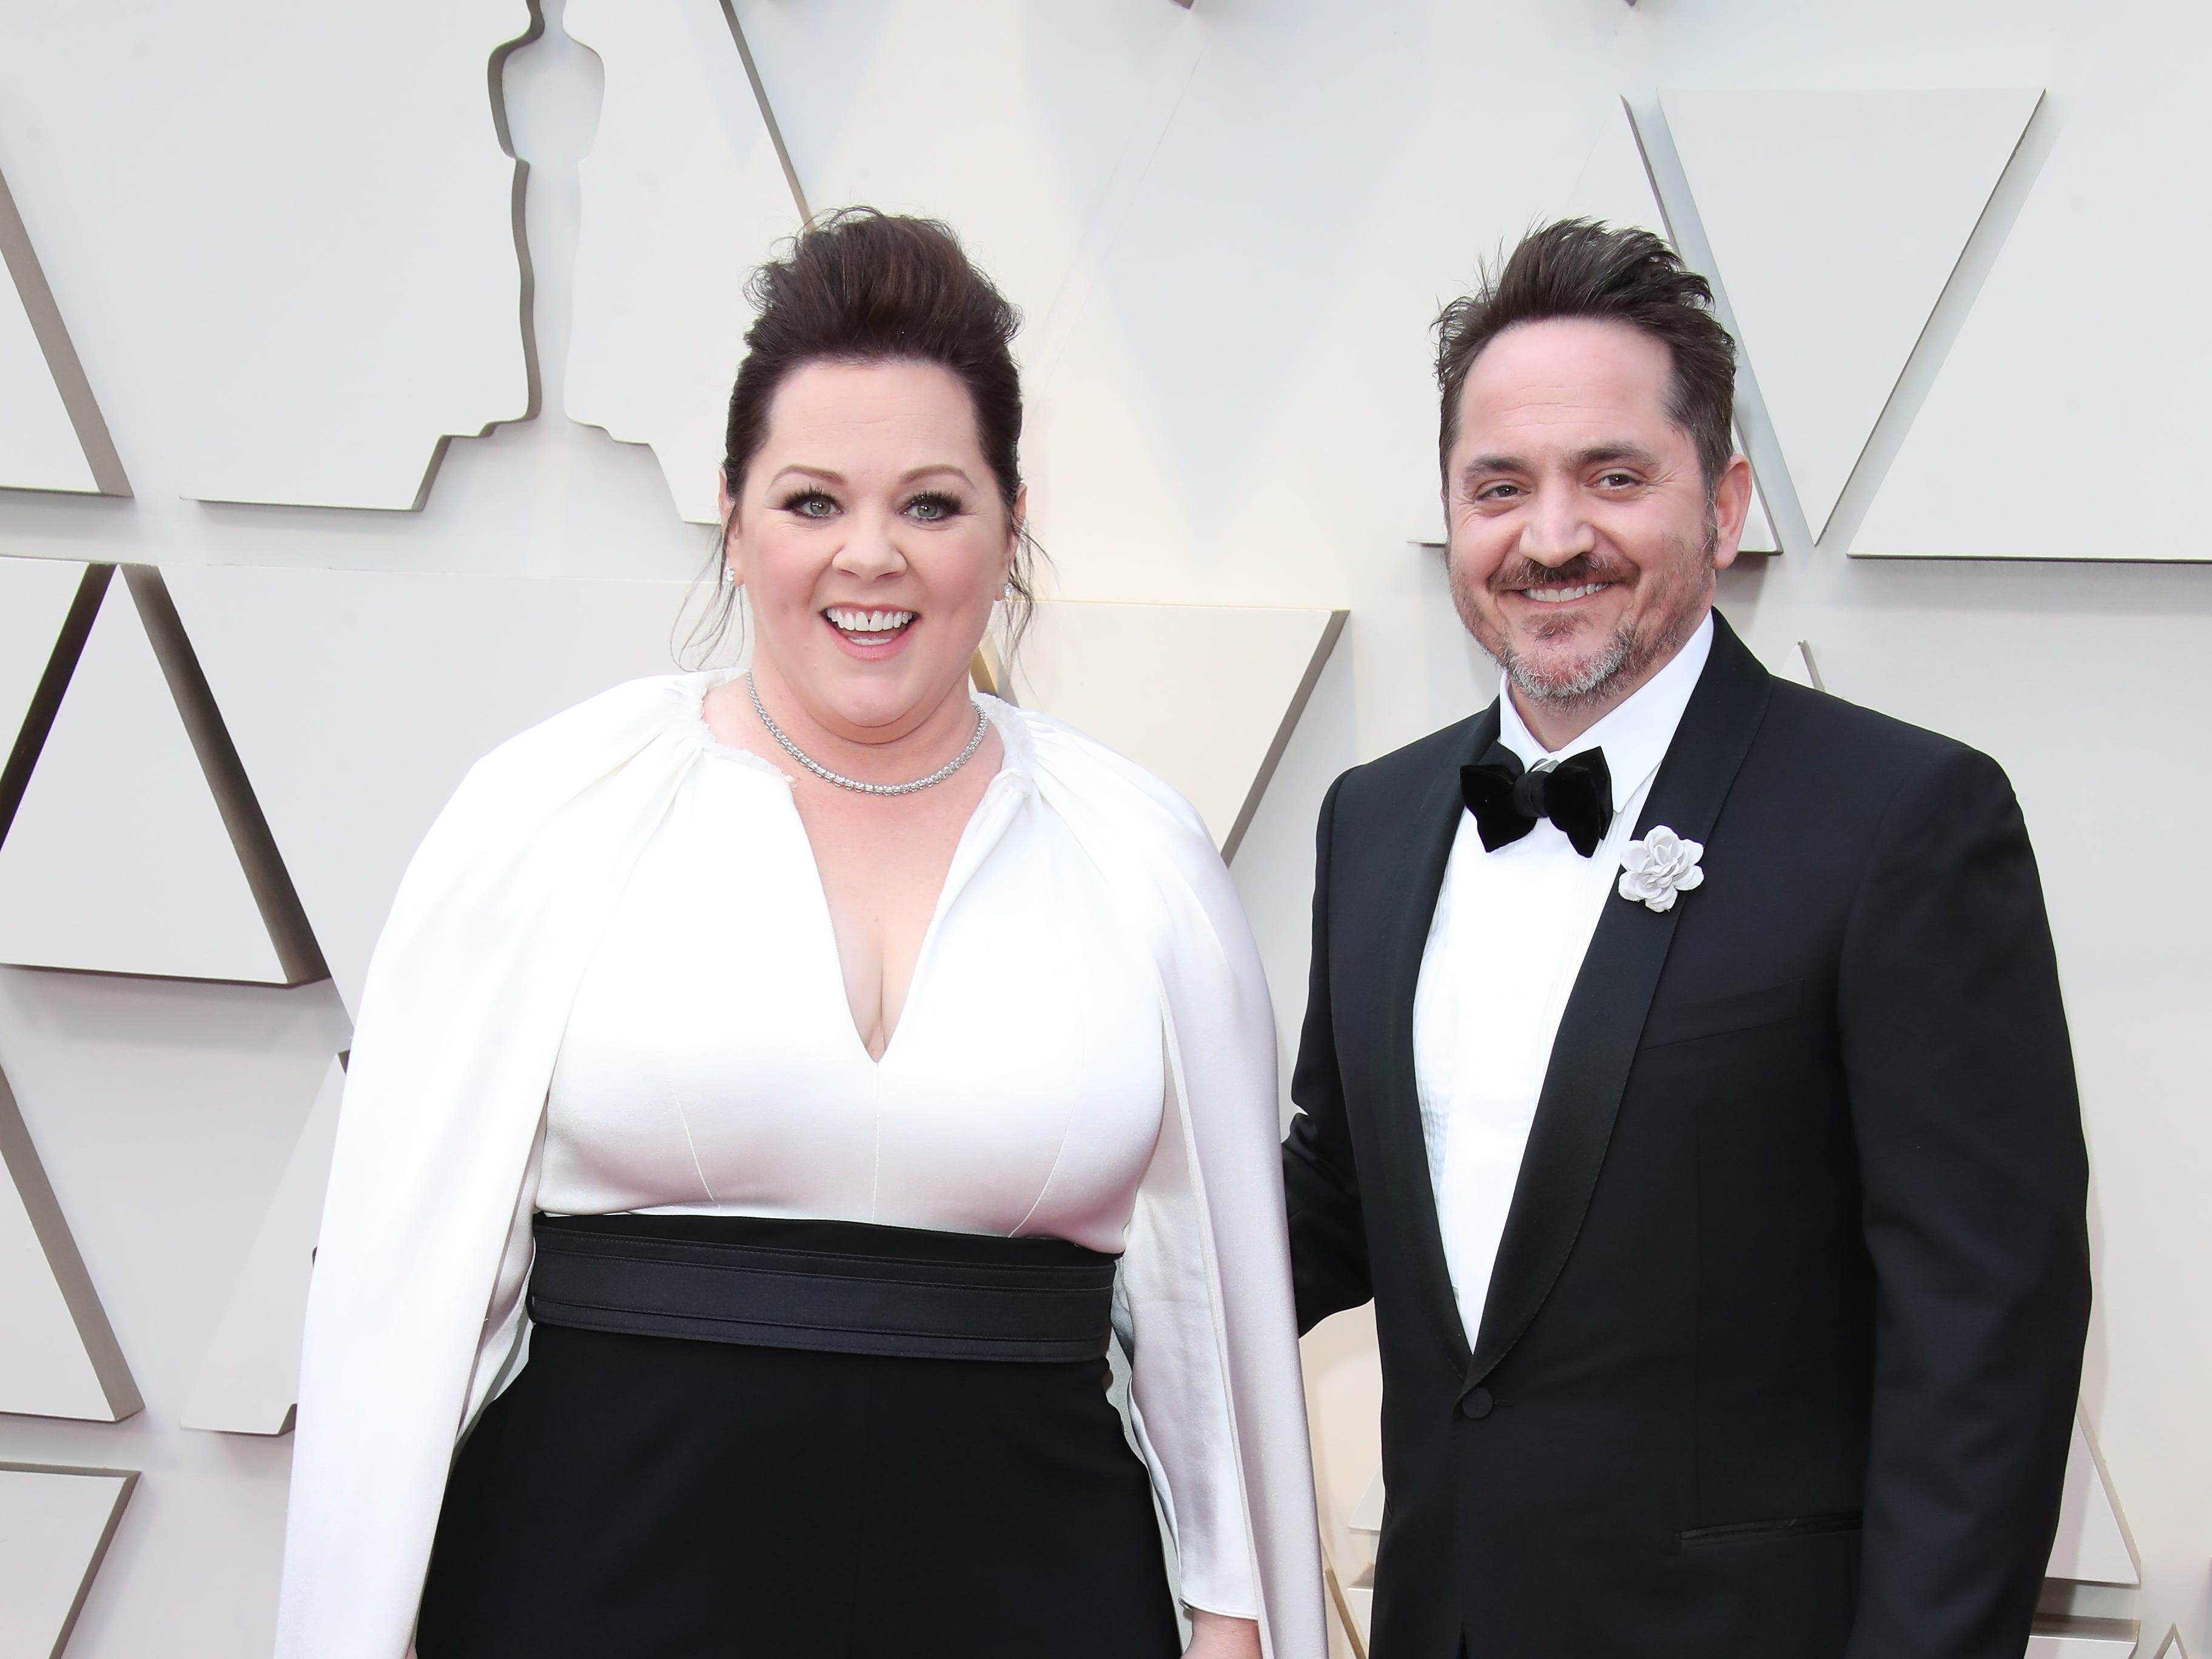 February 24, 2019; Los Angeles, CA, USA; Melissa McCarthy, left and Ben Falcone arrive at the 91st Academy Awards at the Dolby Theatre. Mandatory Credit: Dan MacMedan-USA TODAY NETWORK (Via OlyDrop)